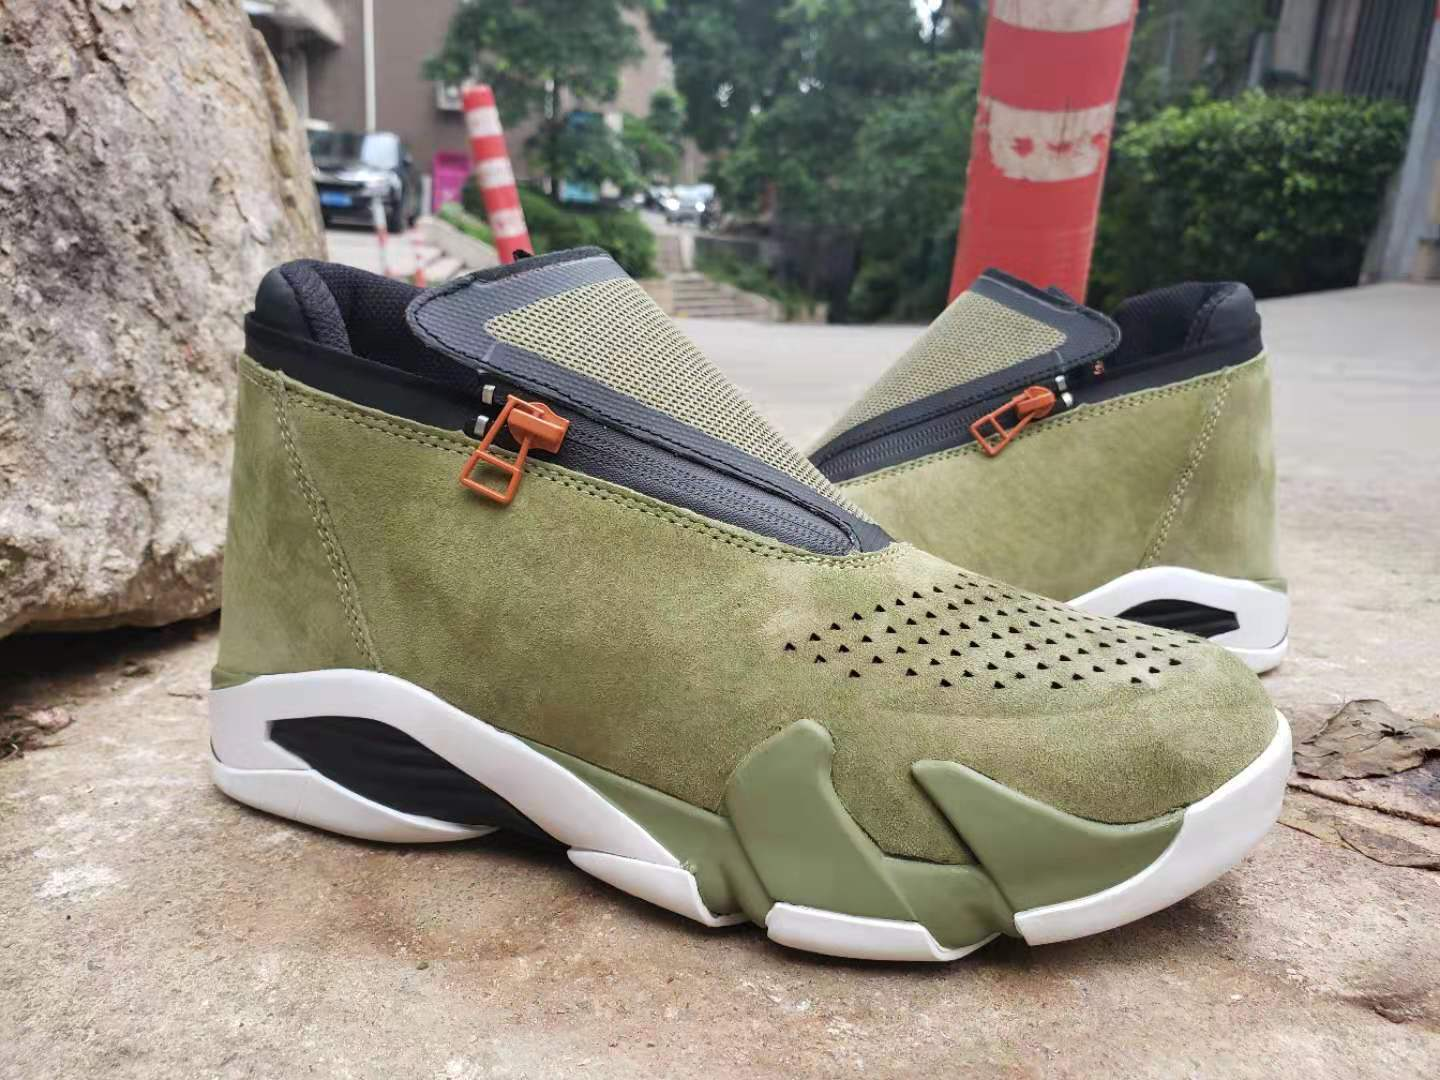 2019 Men Jordan 14 Retro Zipper Army Green Black Shoes